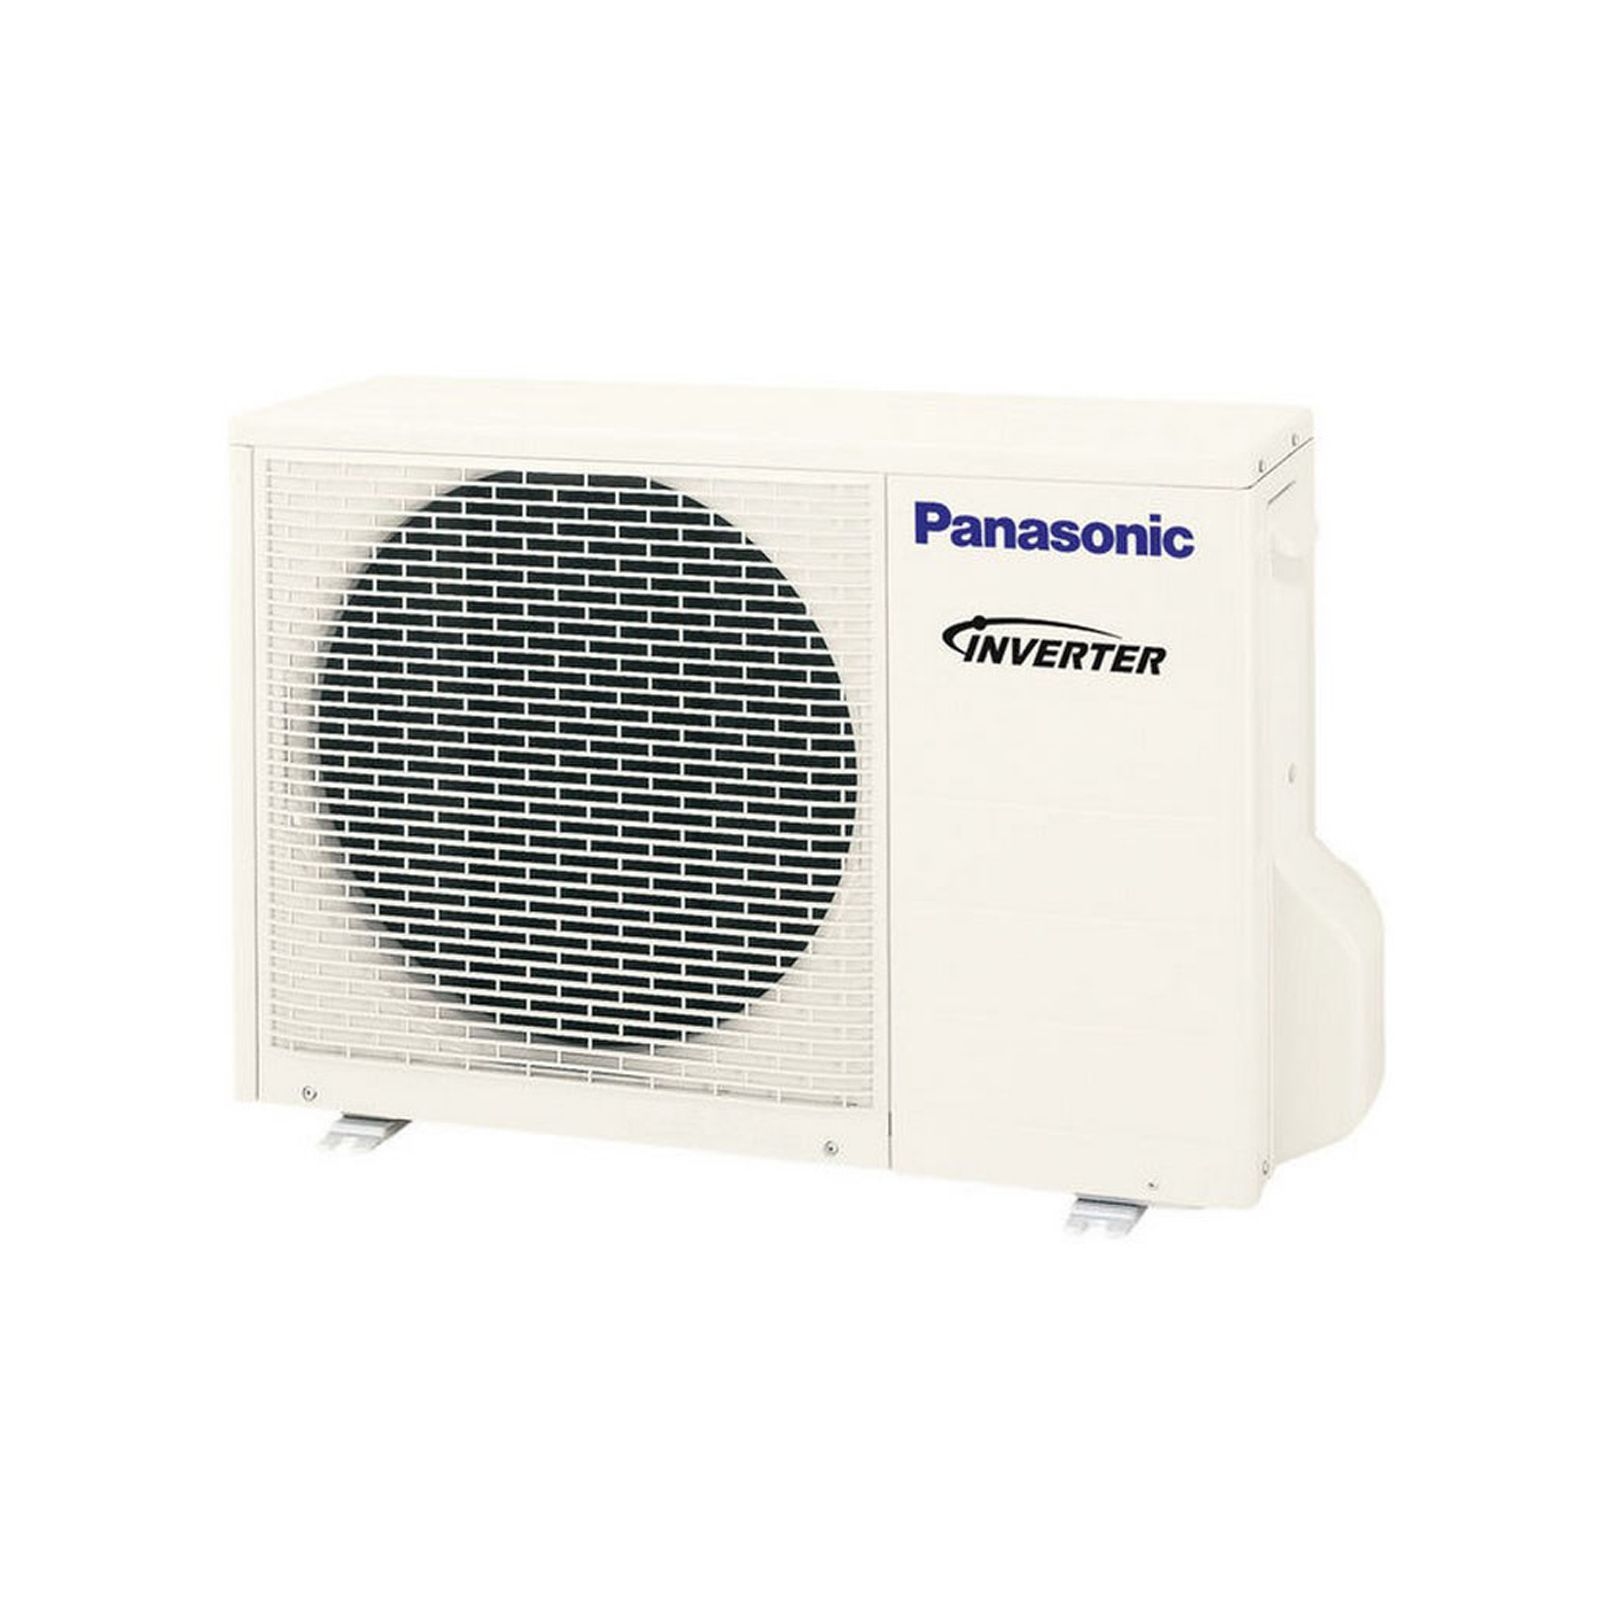 Panasonic CU-RE9SKUA - 9K BTU/H Outdoor Condenser Heat Pump, 16 SEER, 208-230/1/60